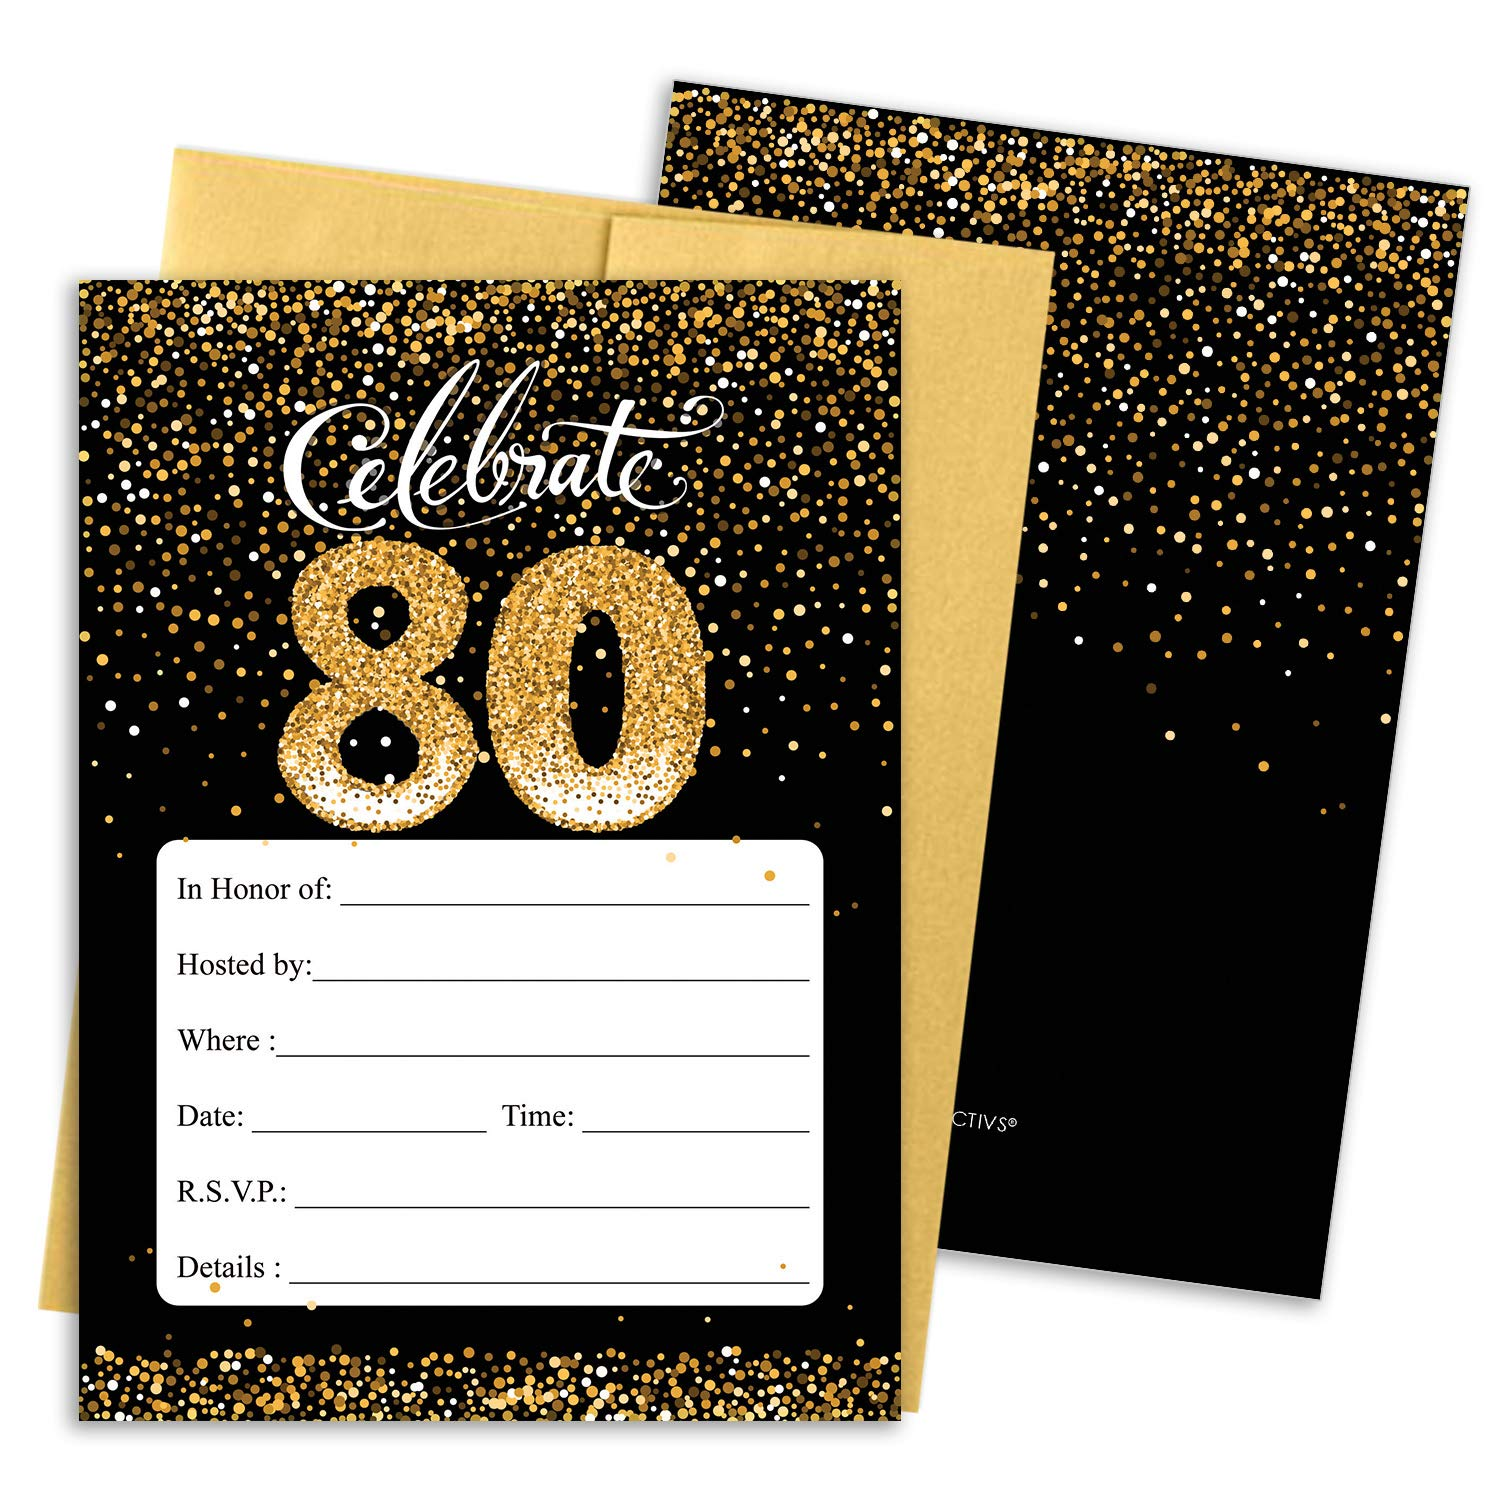 Amazon DISTINCTIVS 80th Birthday Party Invitation Cards With Envelopes 25 Count Black And Gold Home Kitchen